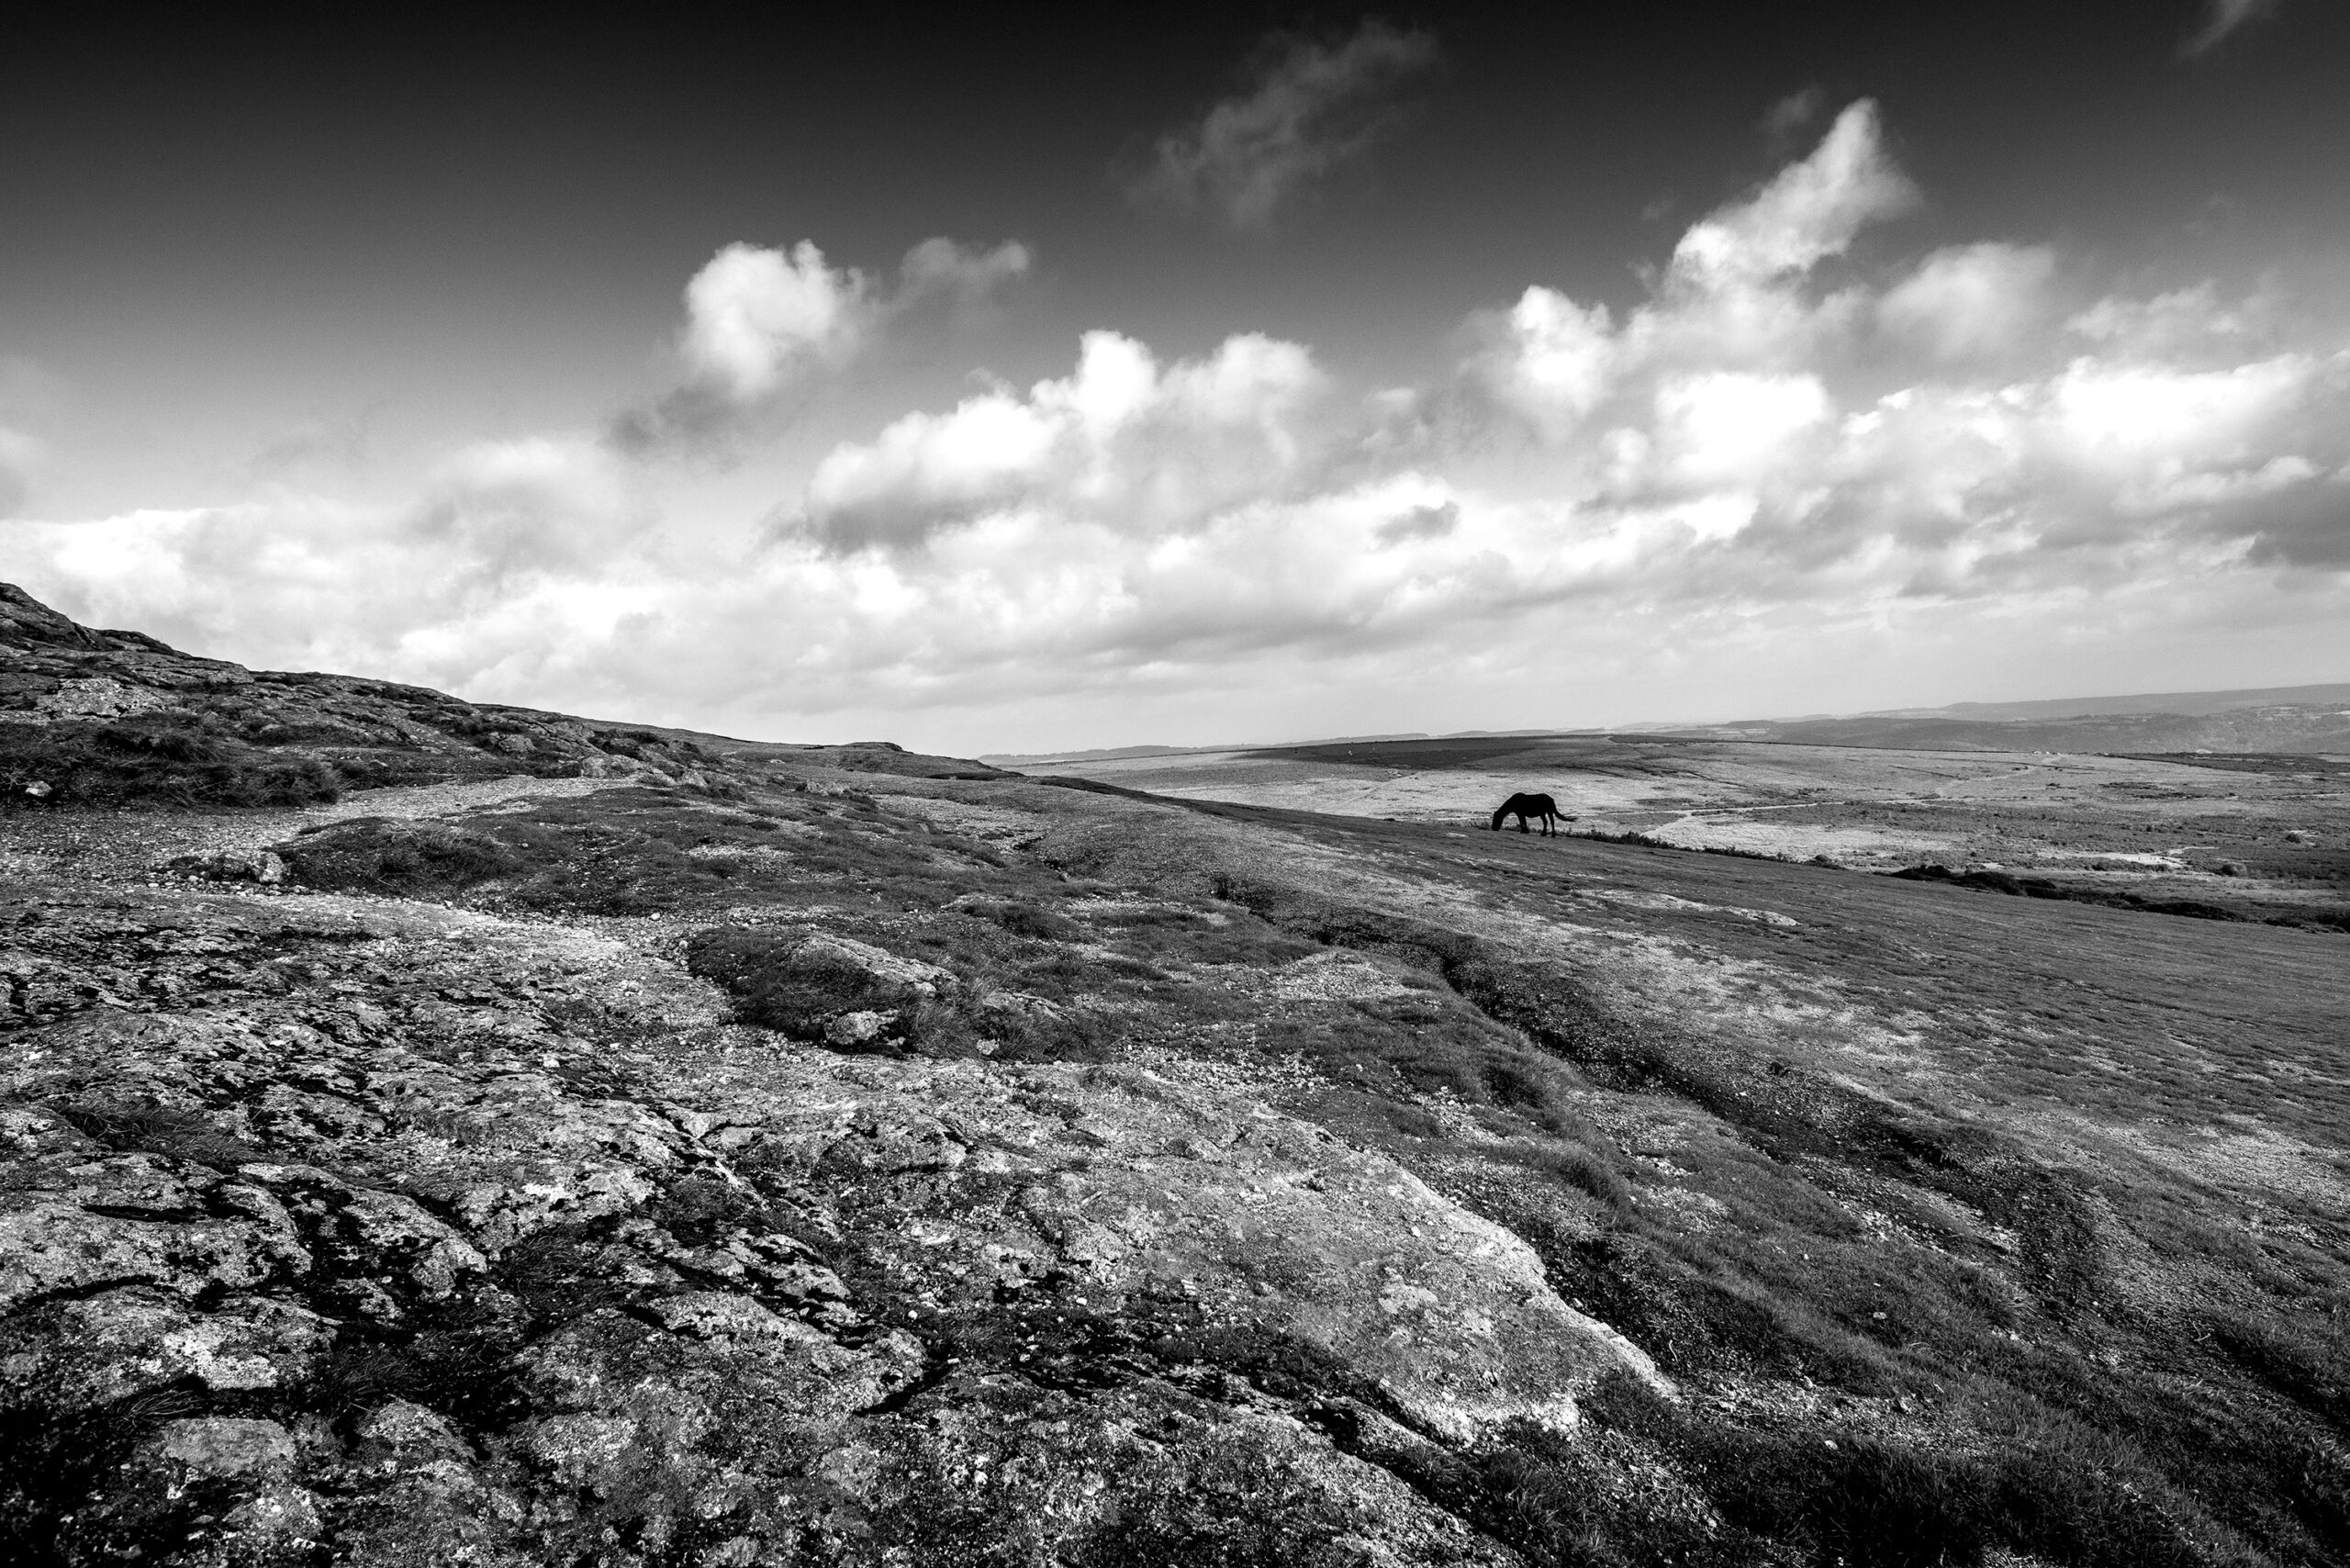 Black and white photography of the Dartmoor located near Exeter in England.